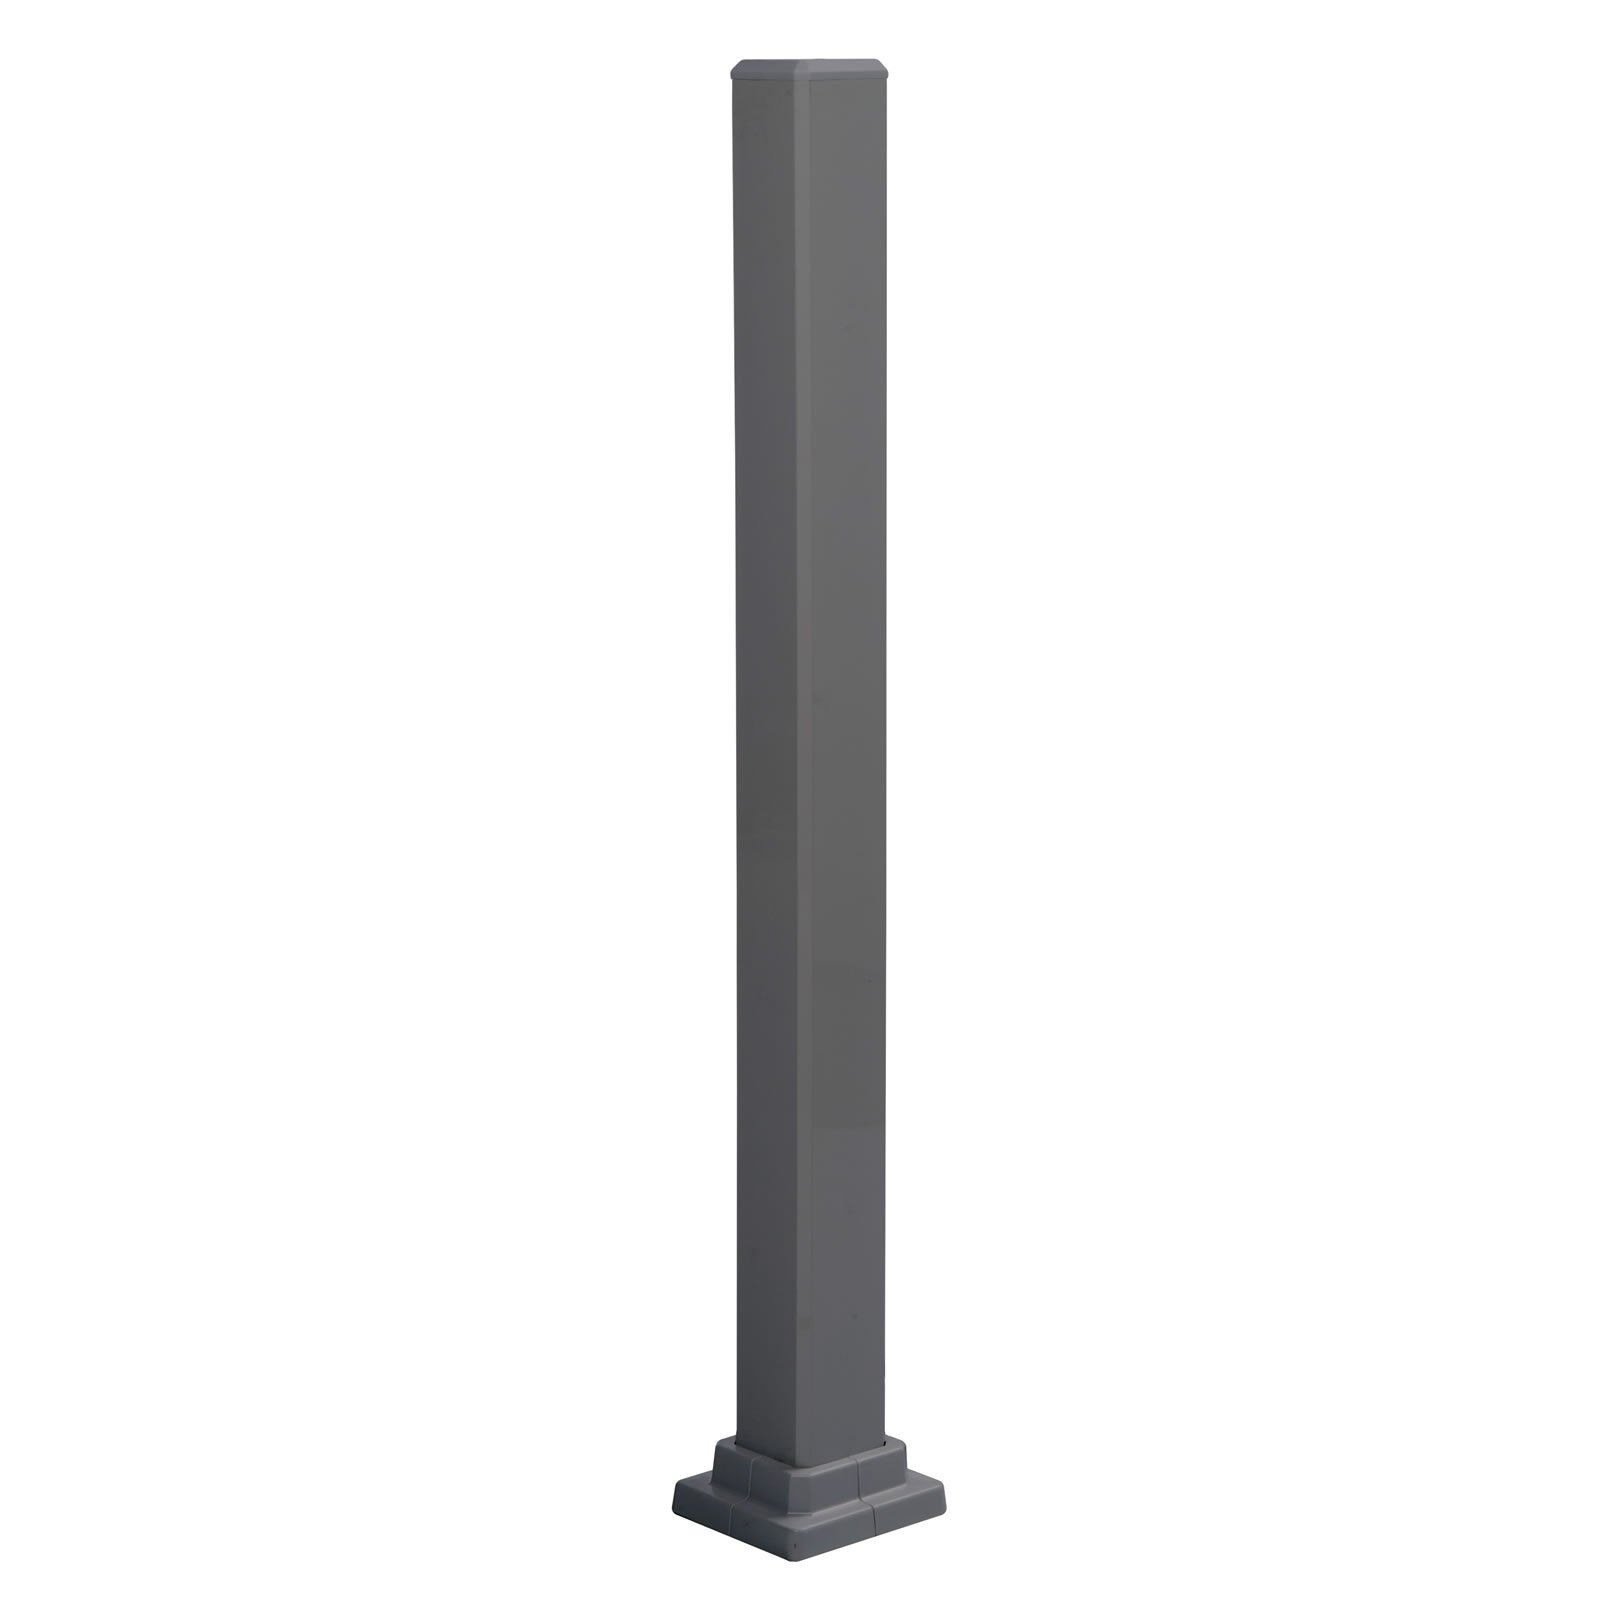 Mounting Post for Promenaid Handrail System, Aluminum, Charcoal Grey, 3''X3'' Tube, 5'' Square Base Flange, 37'' High by PROMENAID